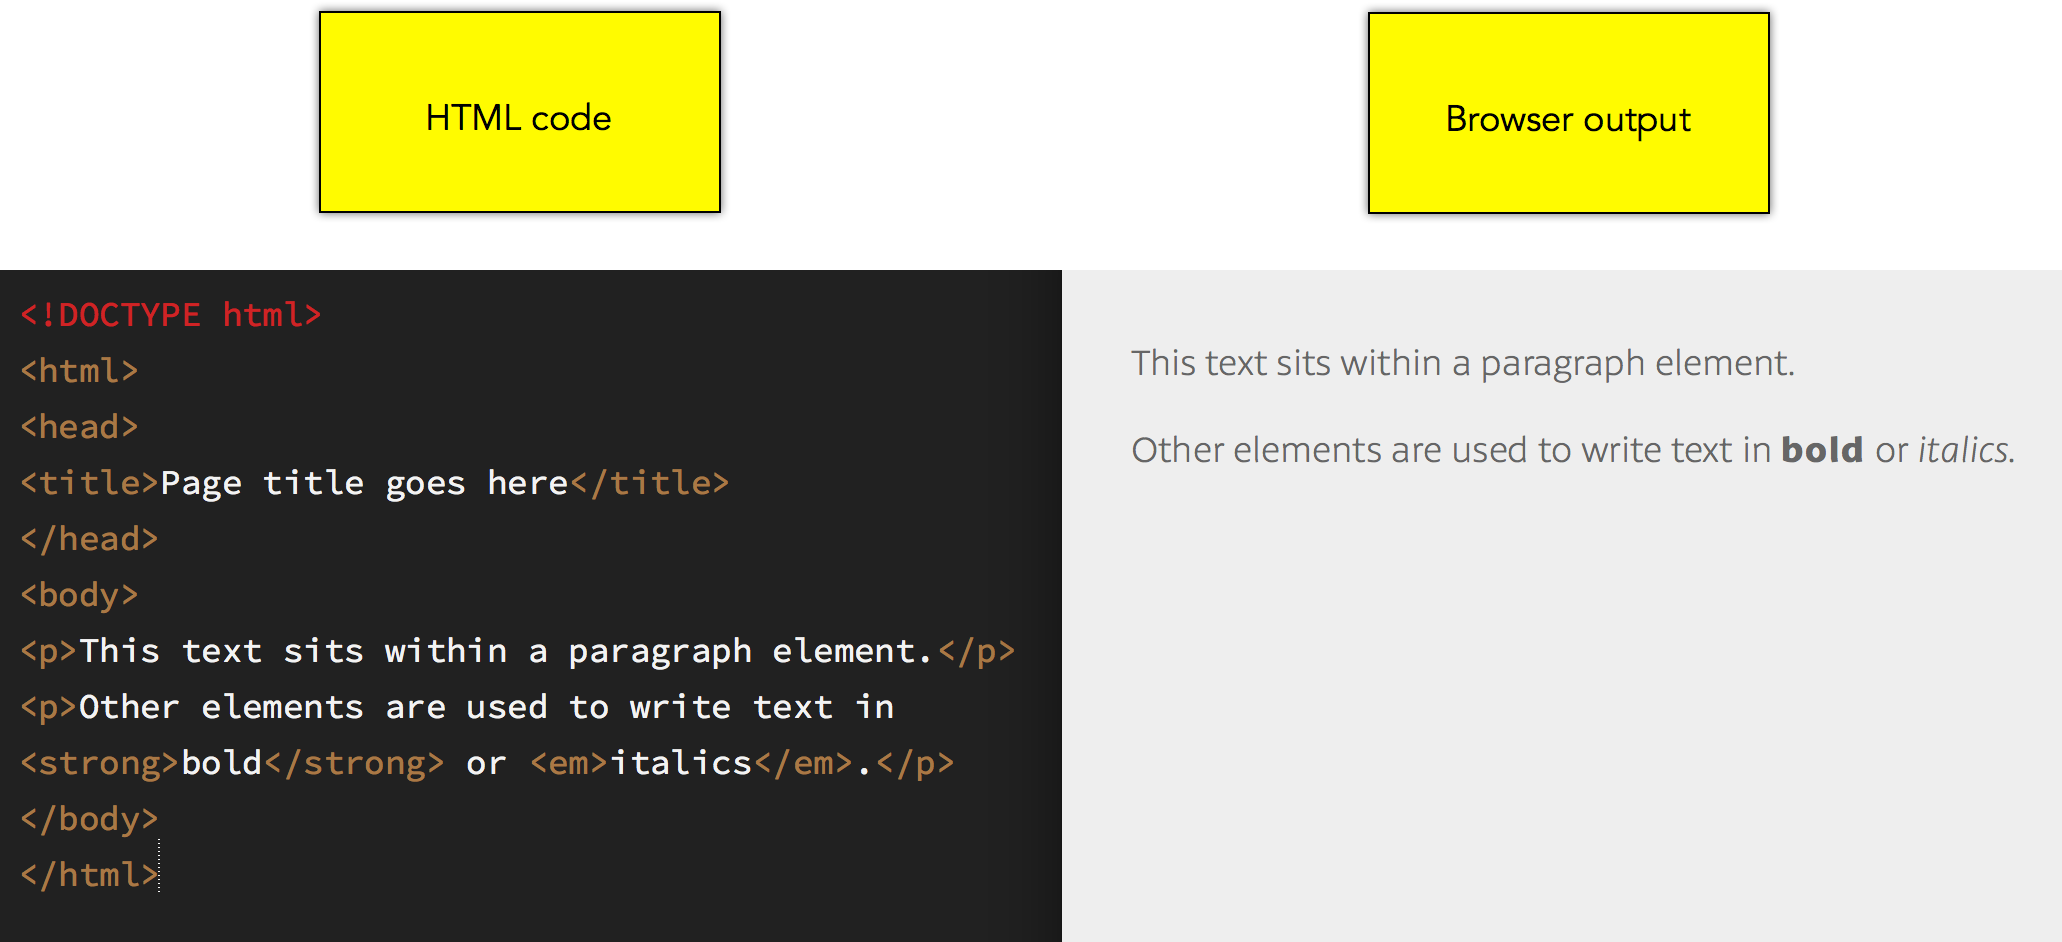 HTML code (left) and browser output (right)